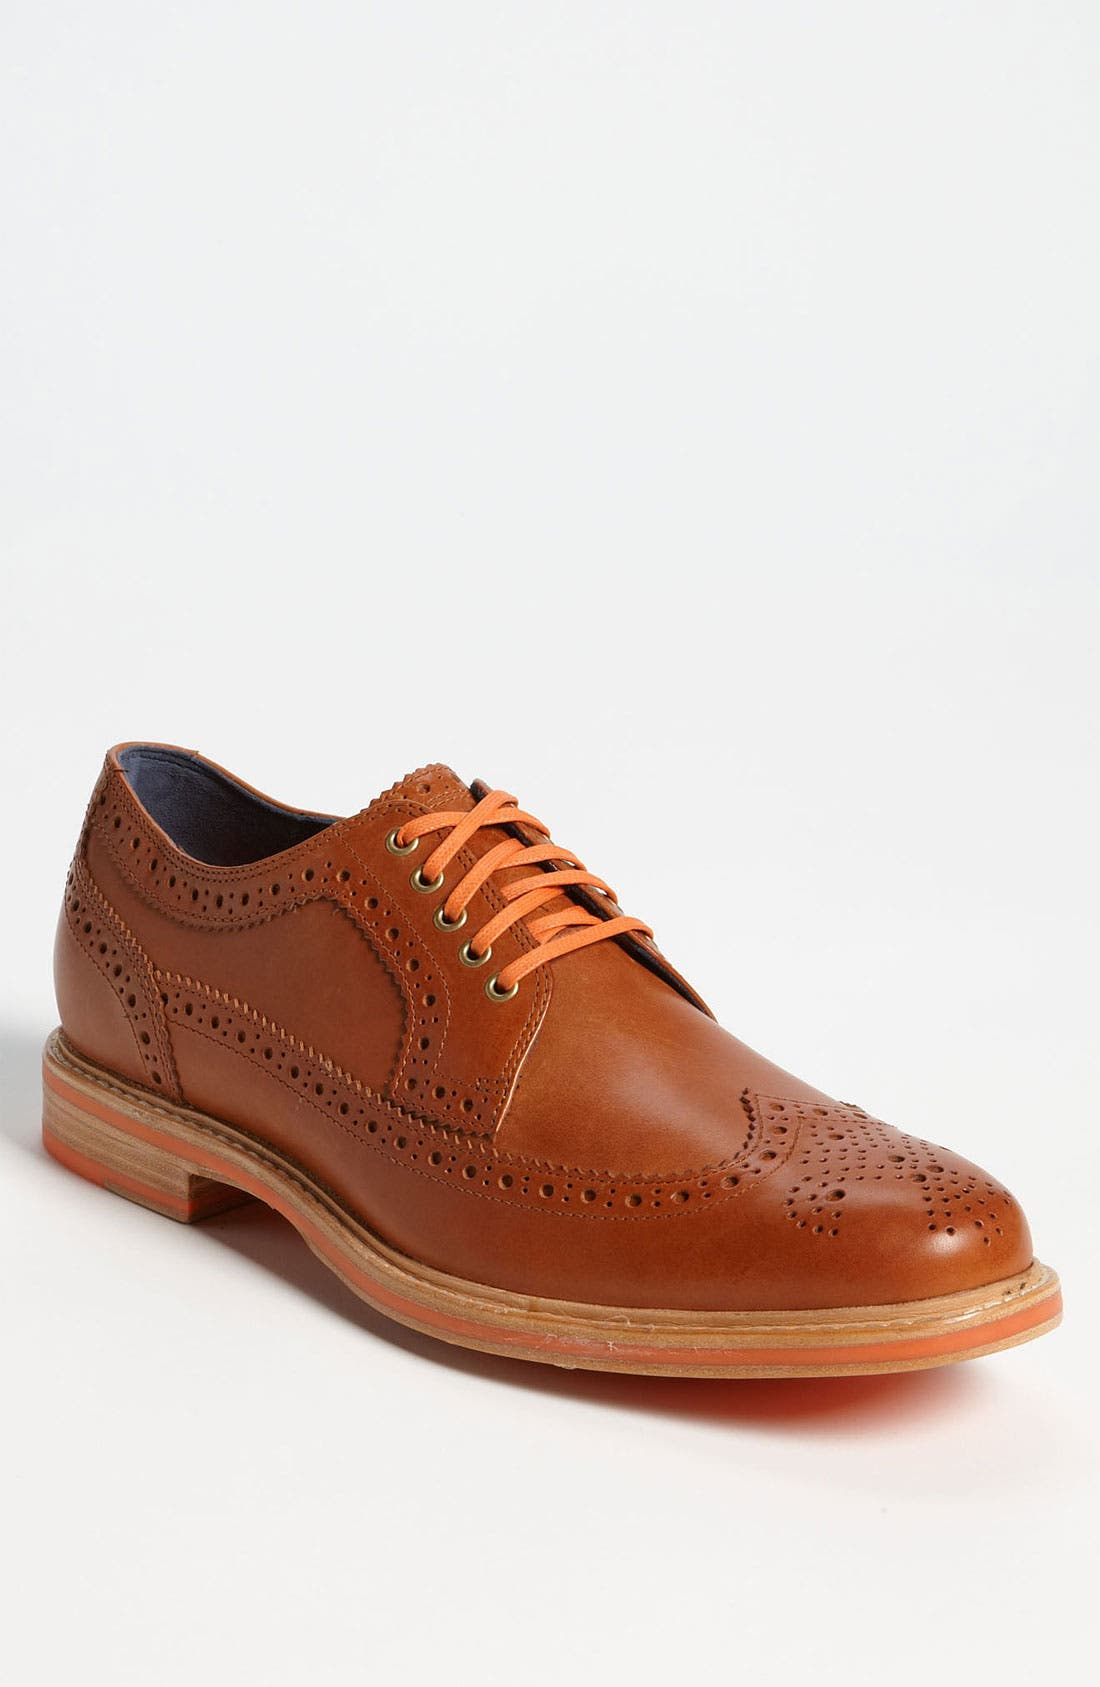 Alternate Image 1 Selected - Cole Haan 'Cooper Square' Longwing Oxford